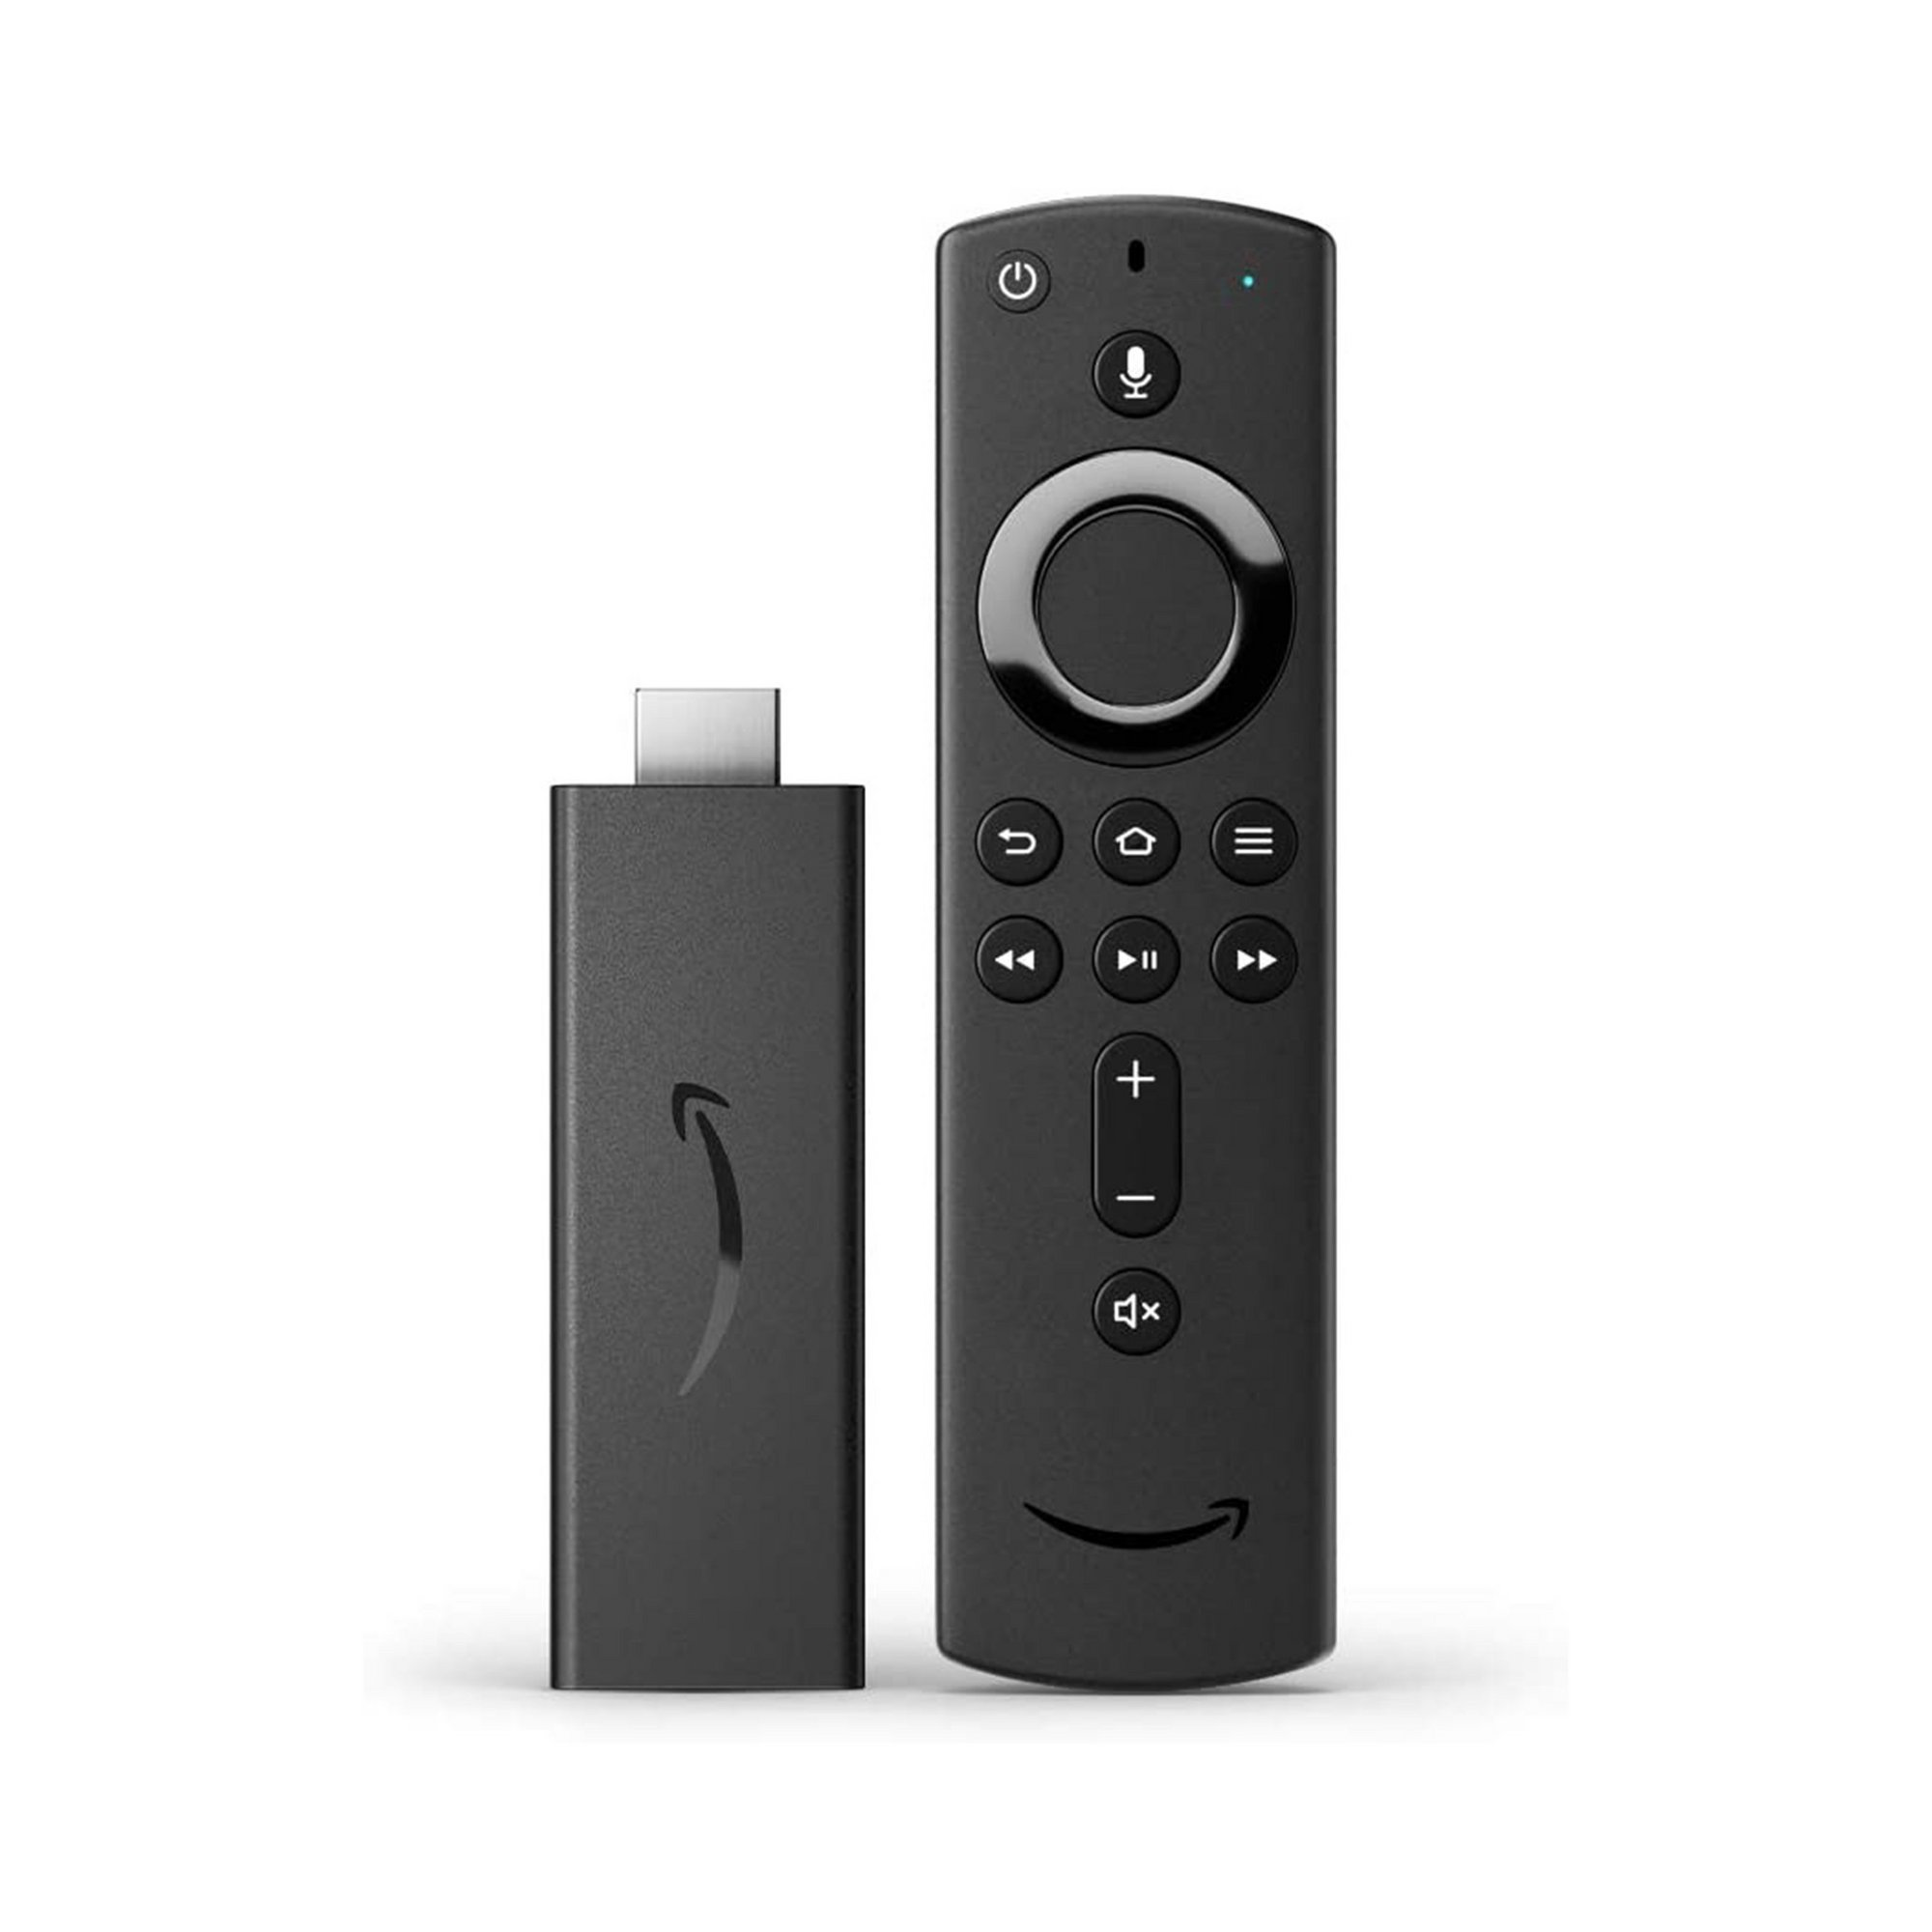 Image of Amazon 2020 Fire TV Stick with Alexa Voice Remote and TV Controls